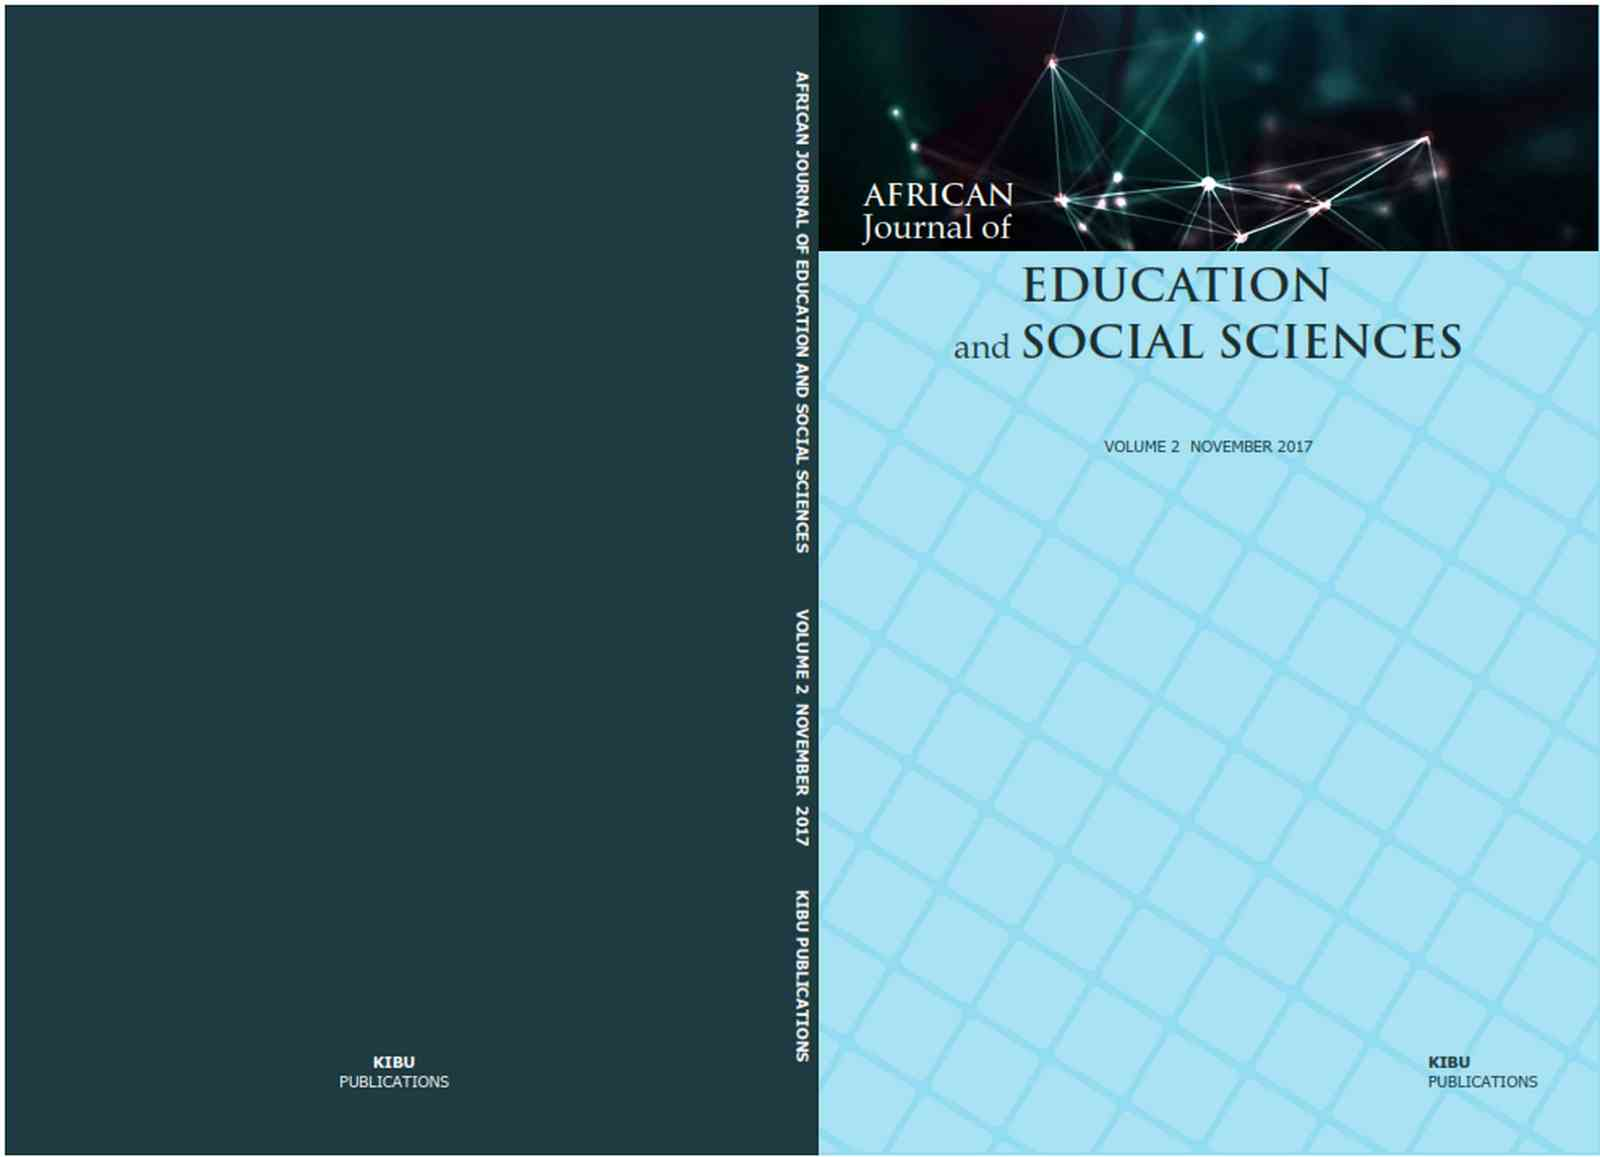 African Journal of Education and Social Sciences (AJESS) Publications 2017